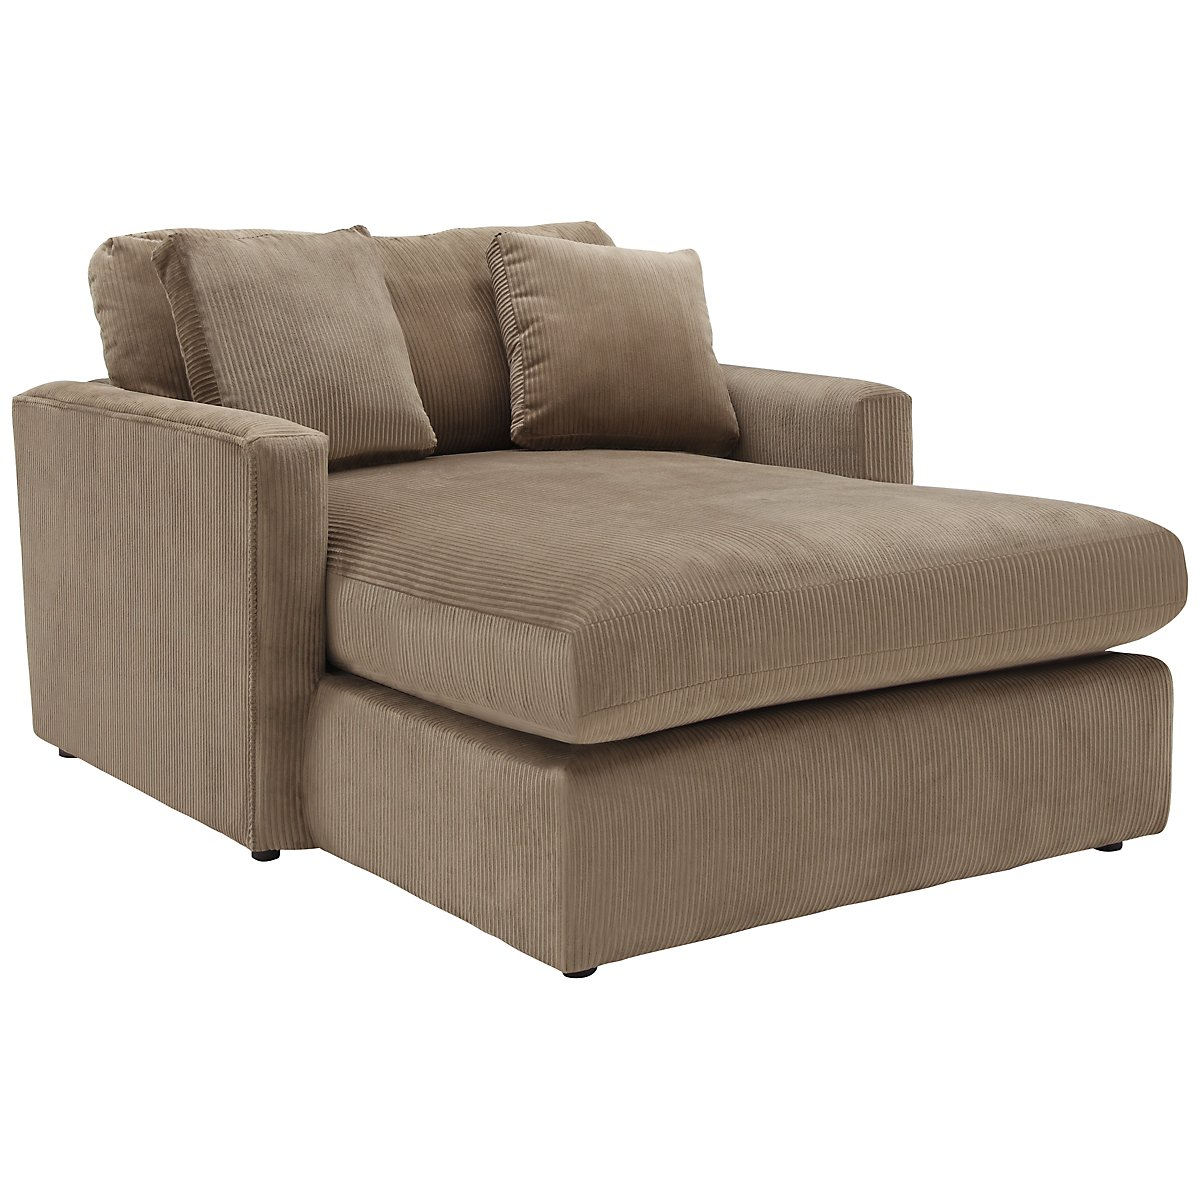 Living Room Chaises City Furniture Living Room Furniture Chaises